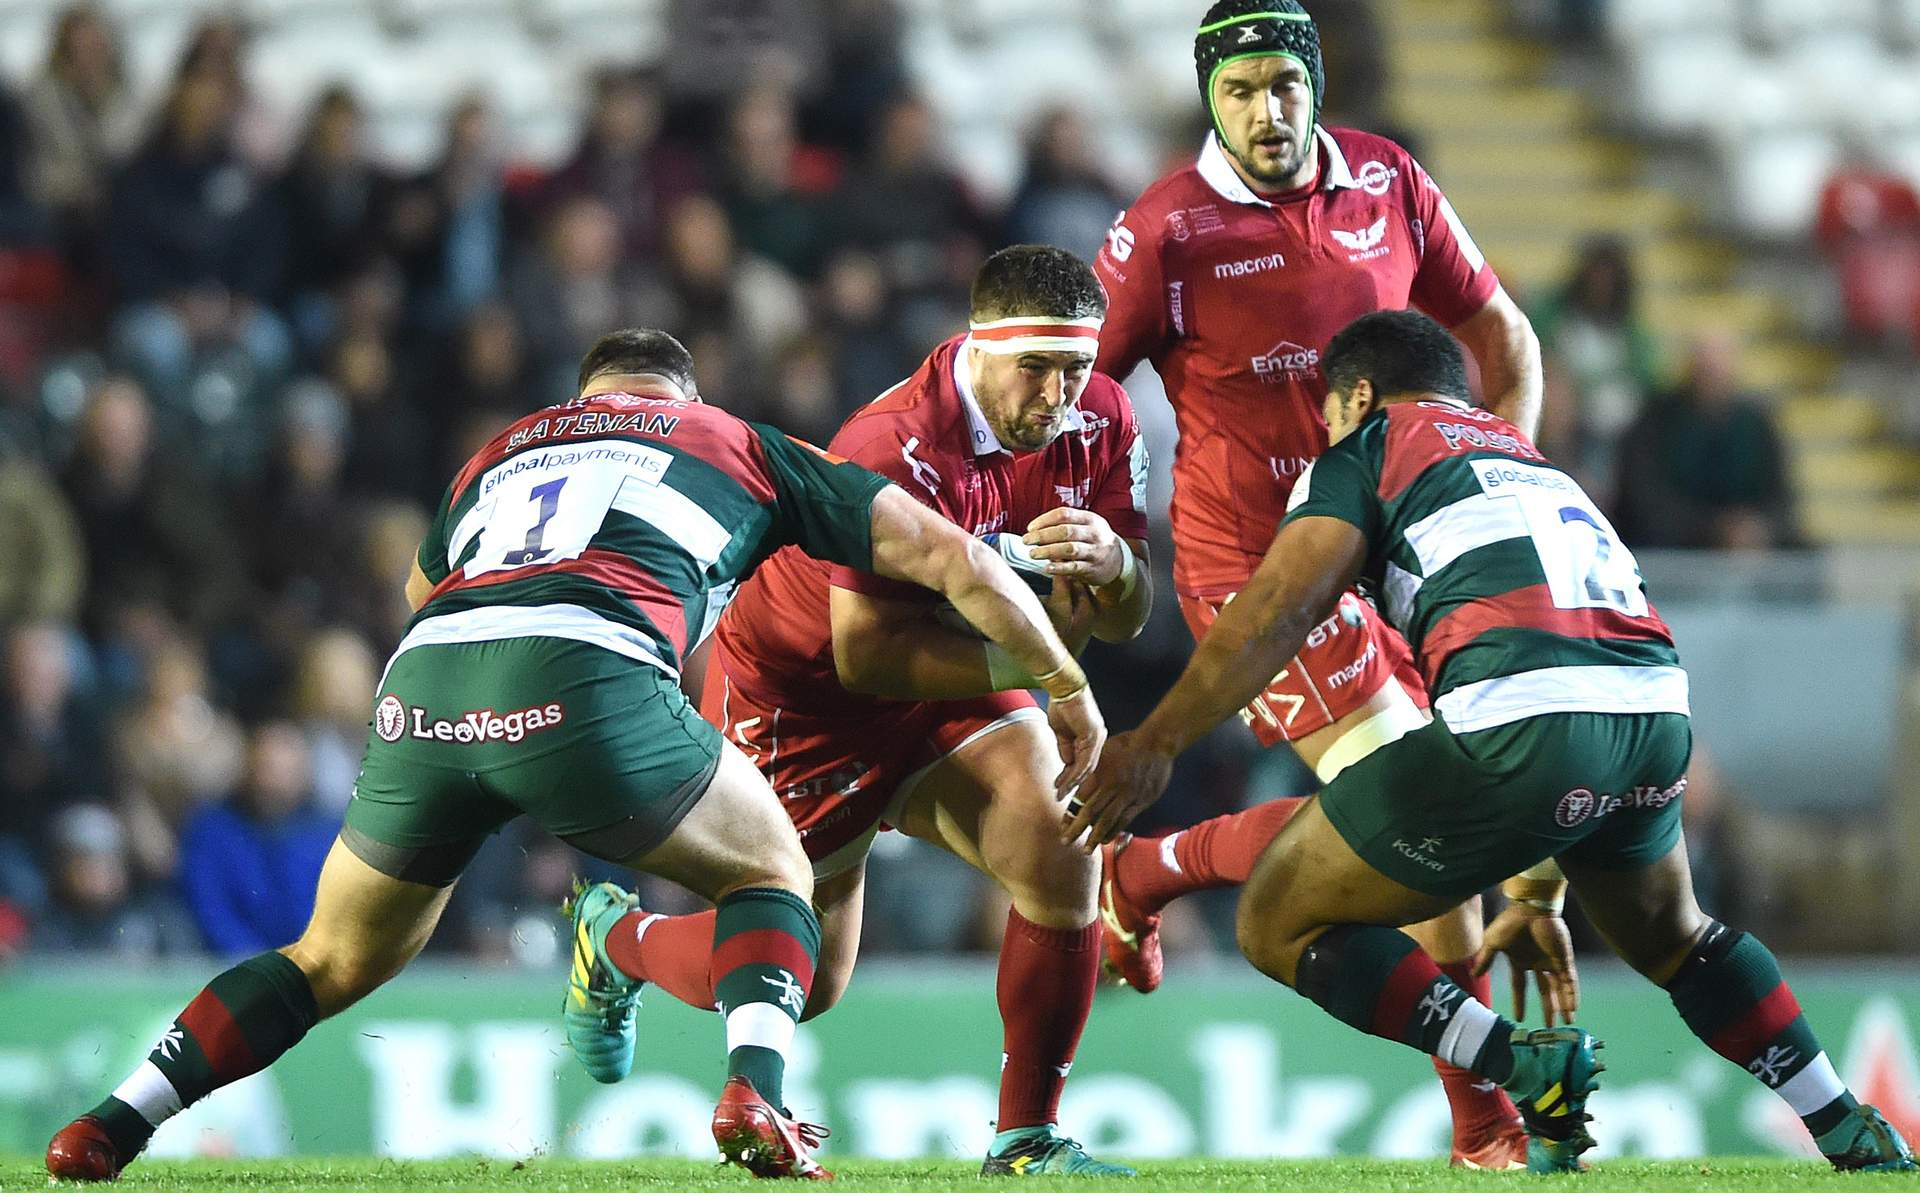 REPORT: Scarlets overpowered by Tigers